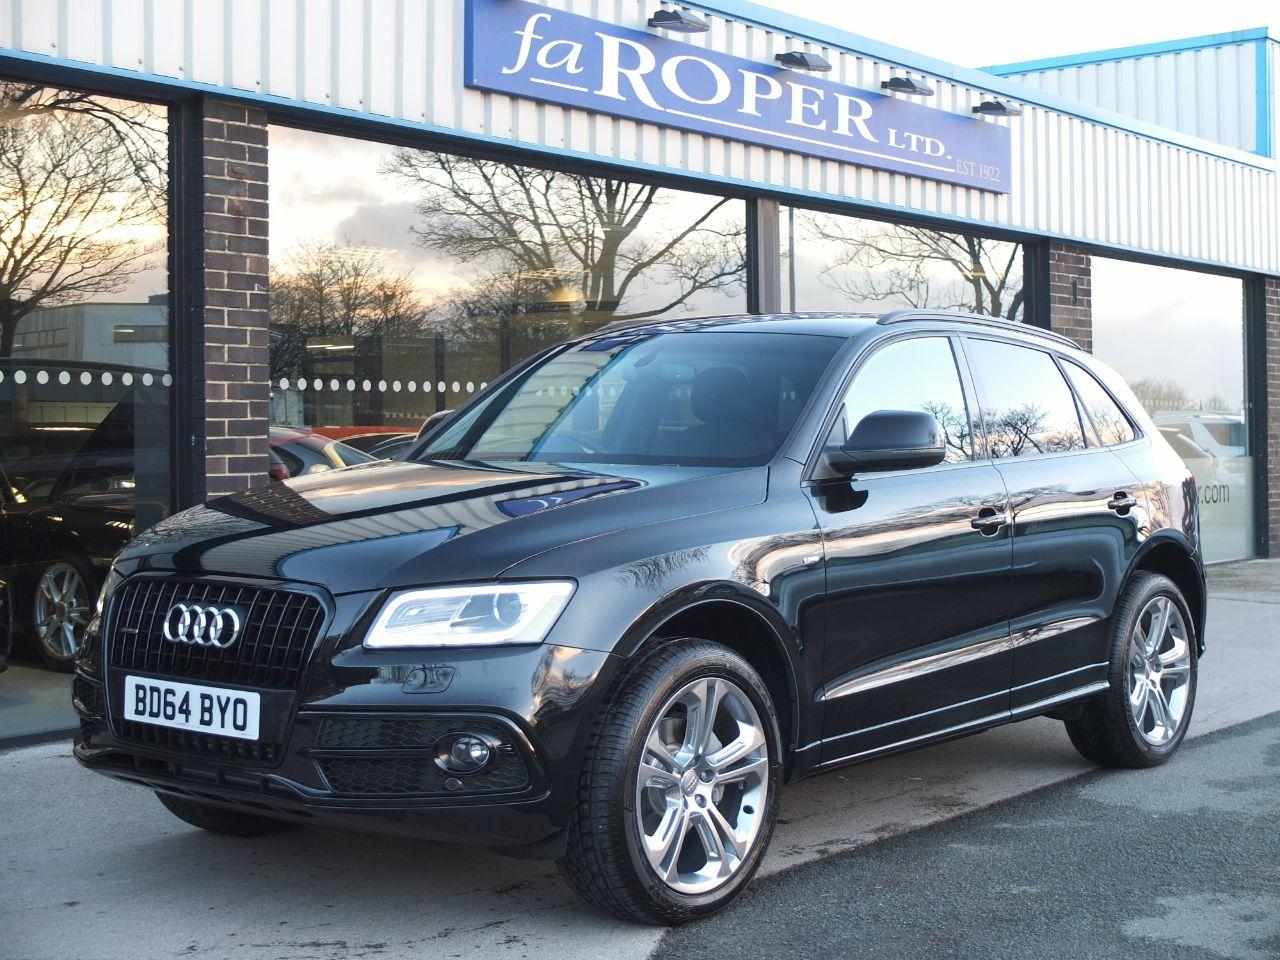 Audi Q5 2.0 TDI quattro S Line Plus 177 ps S Tronic +++Spec Four Wheel Drive Diesel Mythos Black MetallicAudi Q5 2.0 TDI quattro S Line Plus 177 ps S Tronic +++Spec Four Wheel Drive Diesel Mythos Black Metallic at fa Roper Ltd Bradford